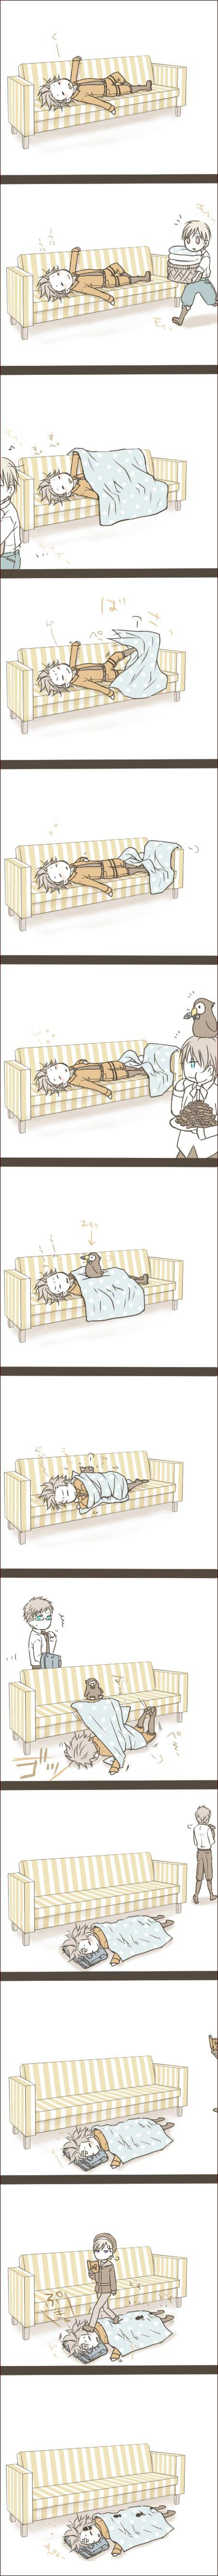 Arne (head-canon name for Denmark) is taking the nap. How do the other Nordics react when they pass him? - Art by Stippie